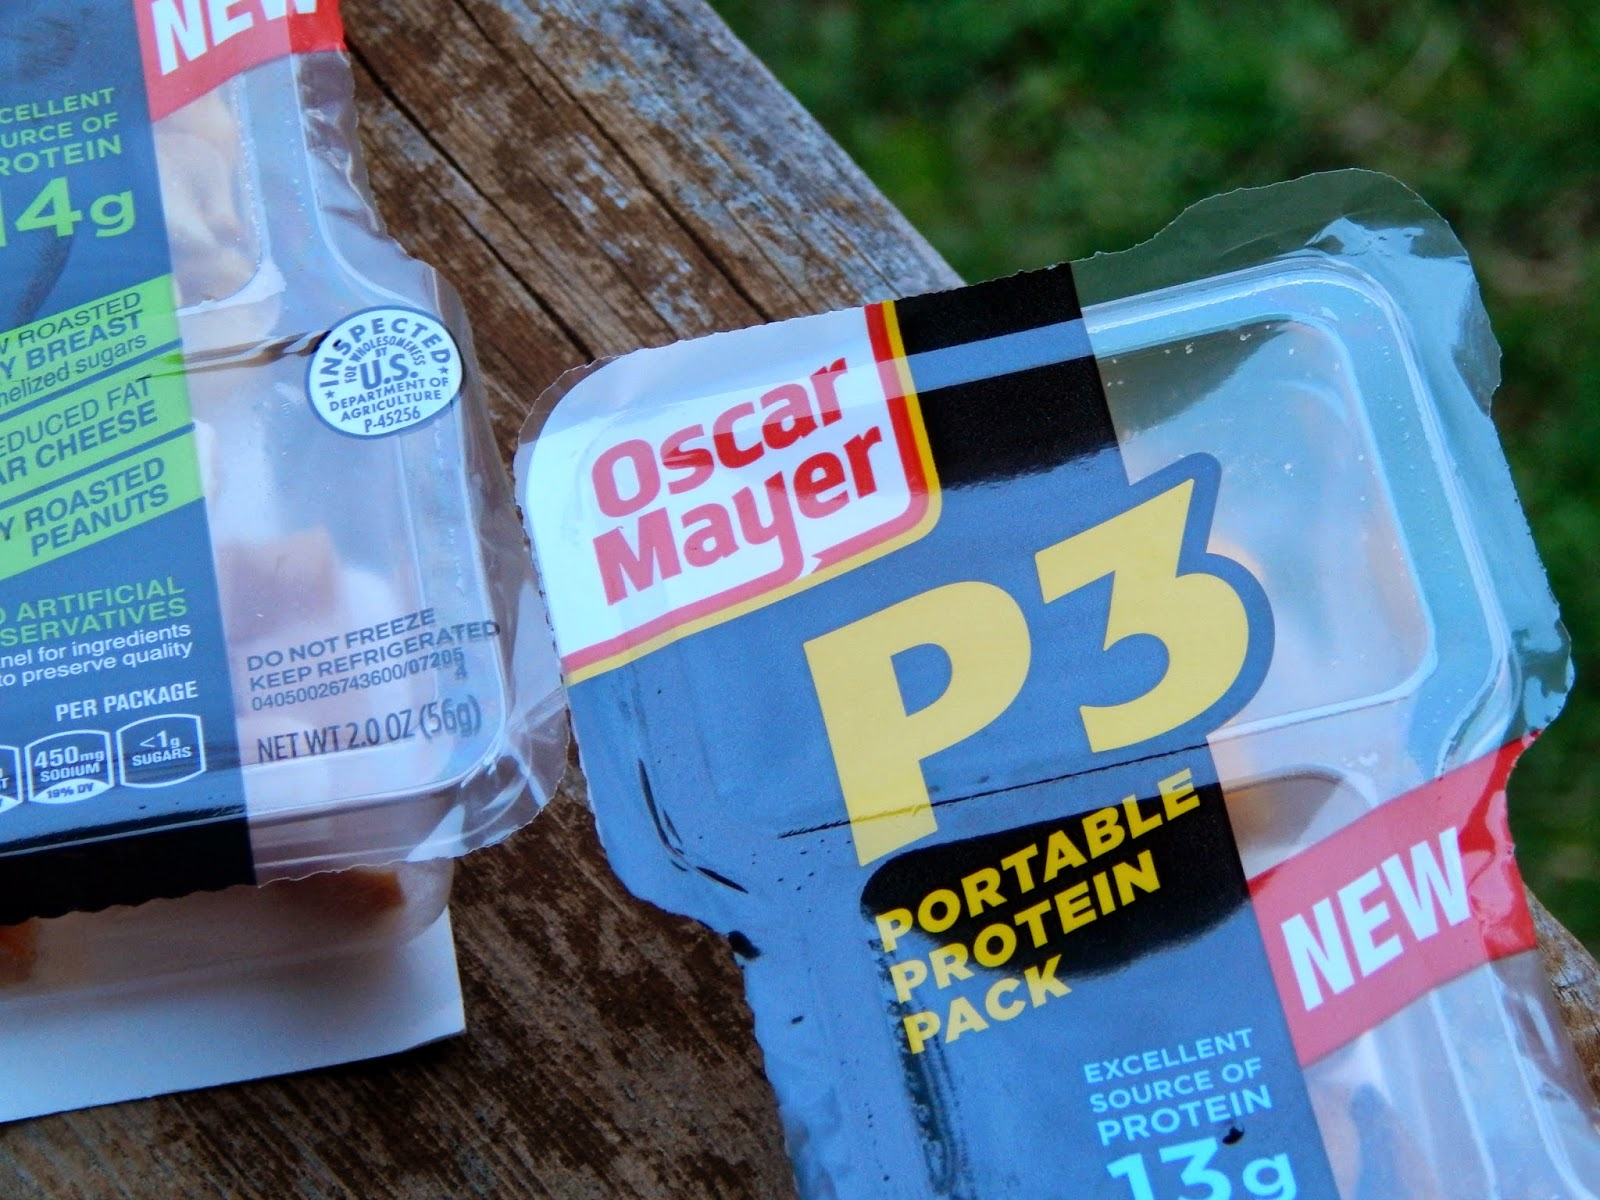 #portableprotein #meatcheesenuts #cbias #shop